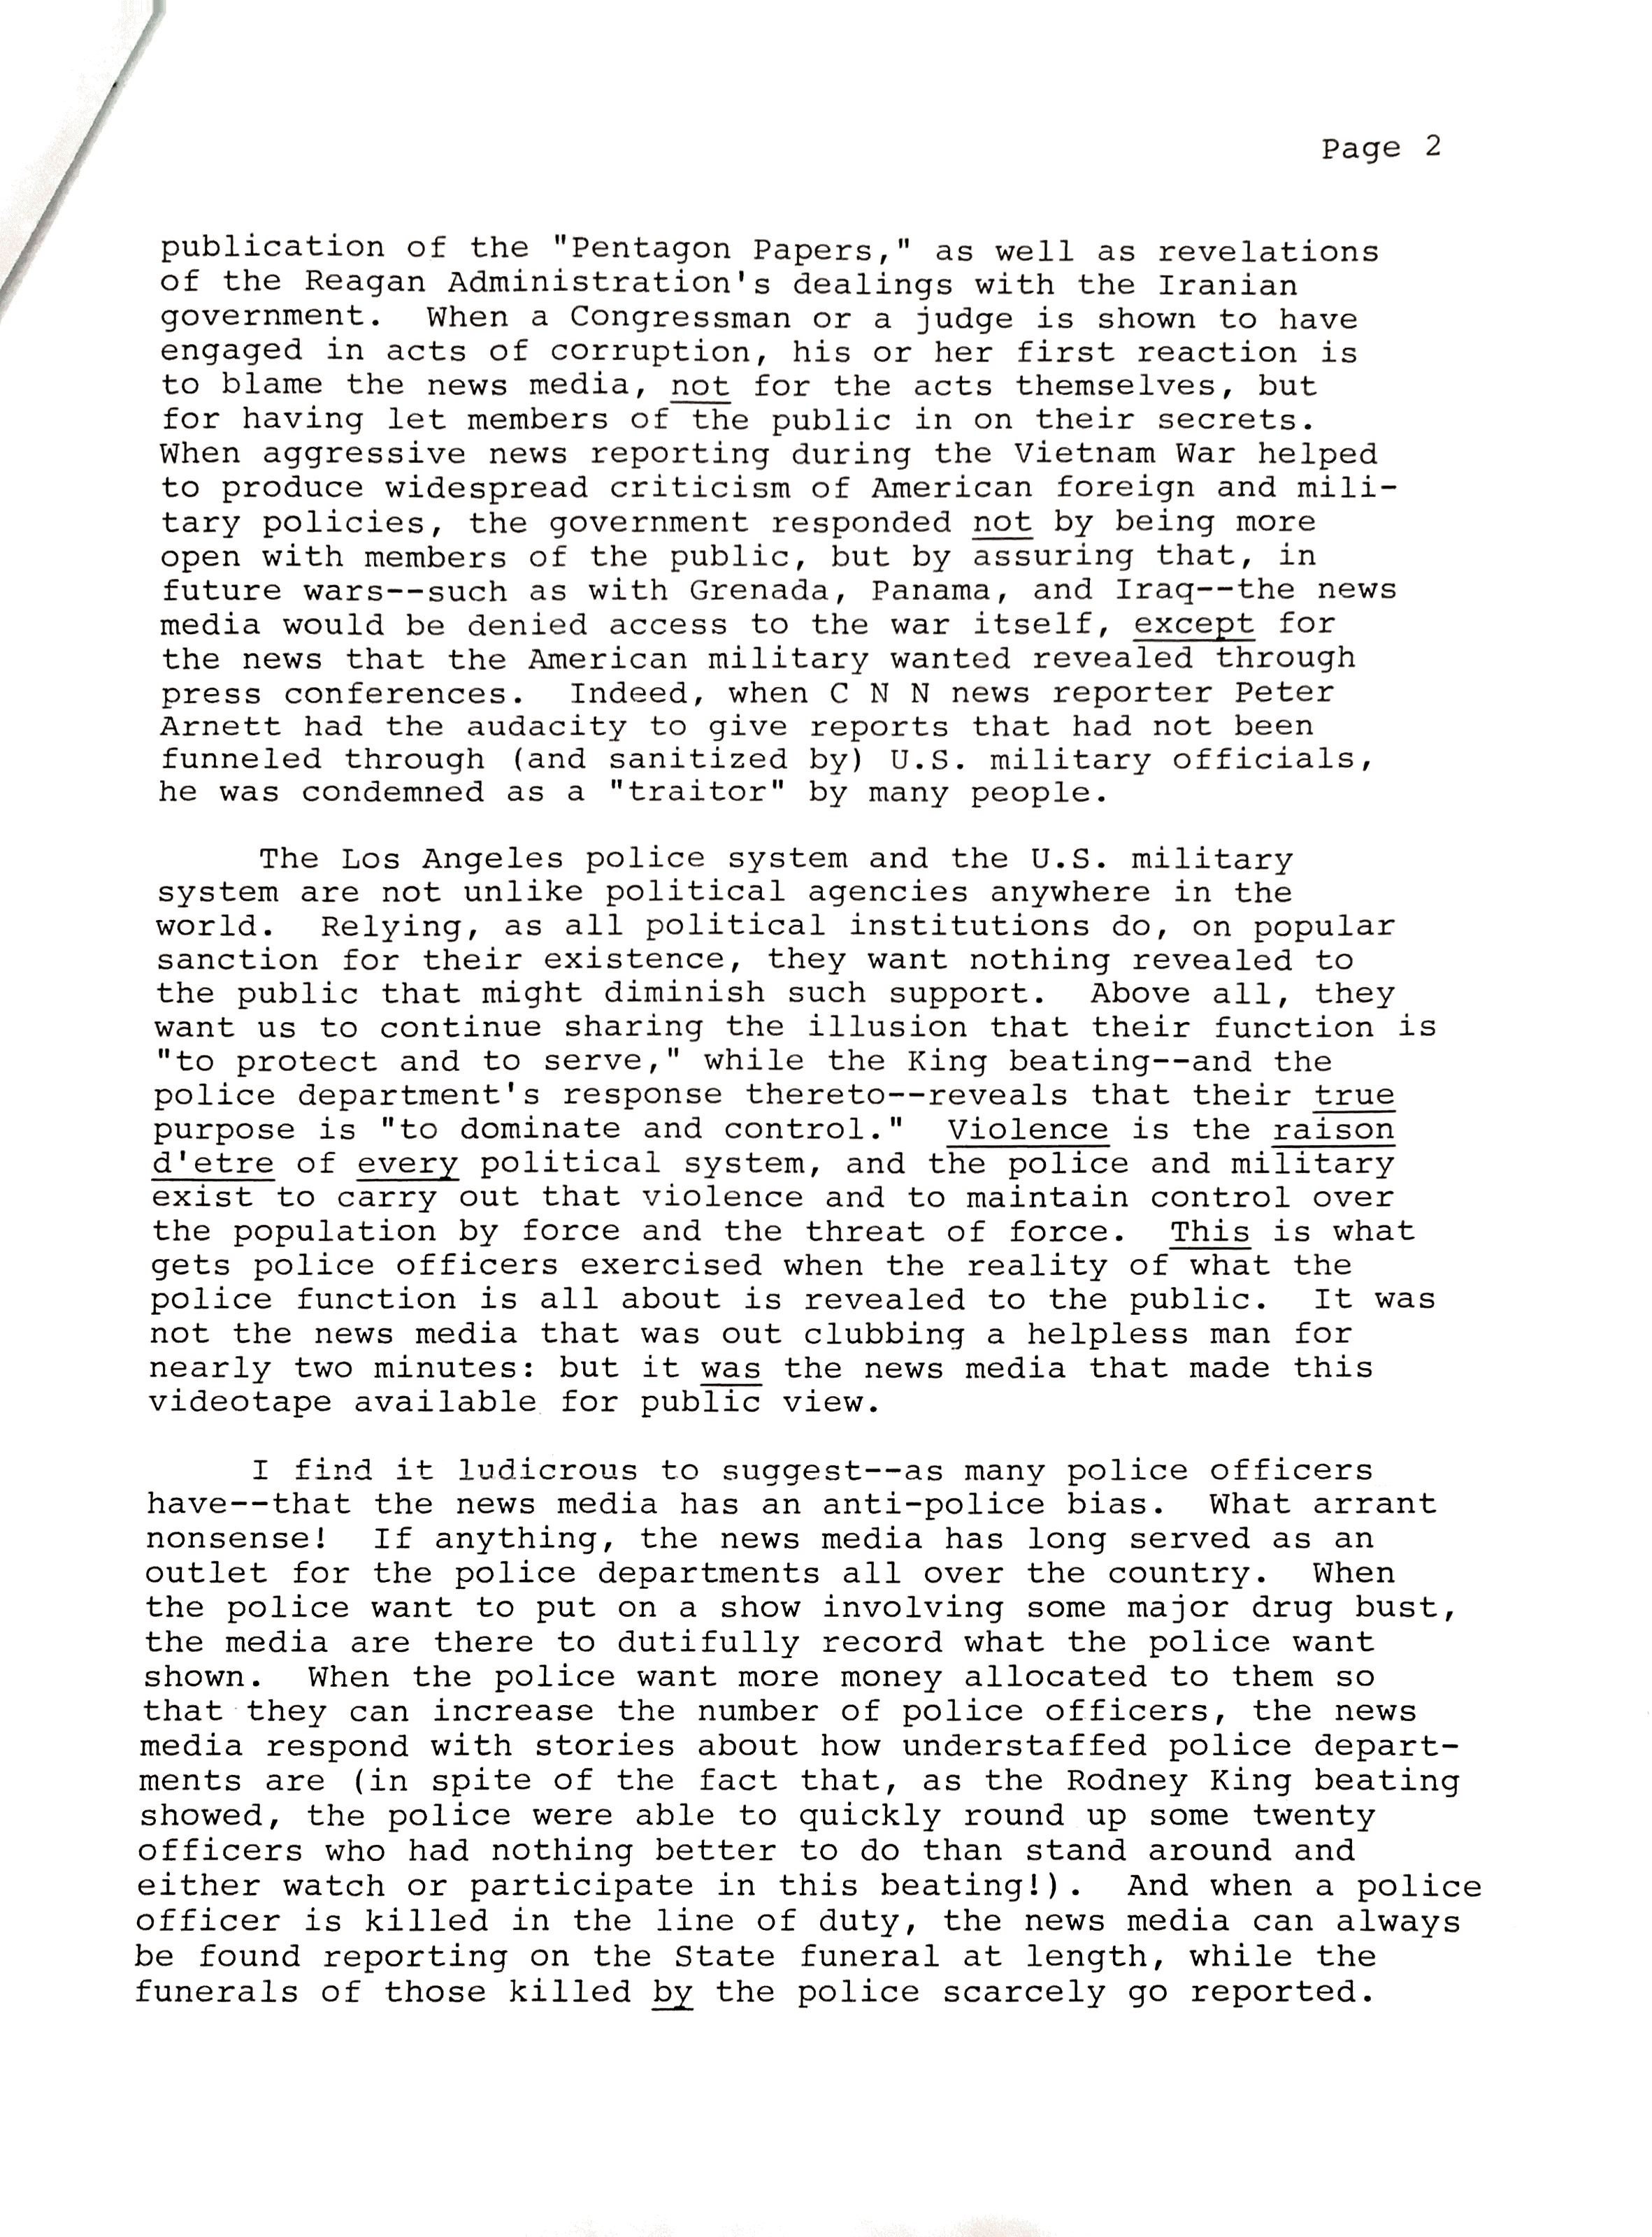 on the banks personal rodney king letter p2